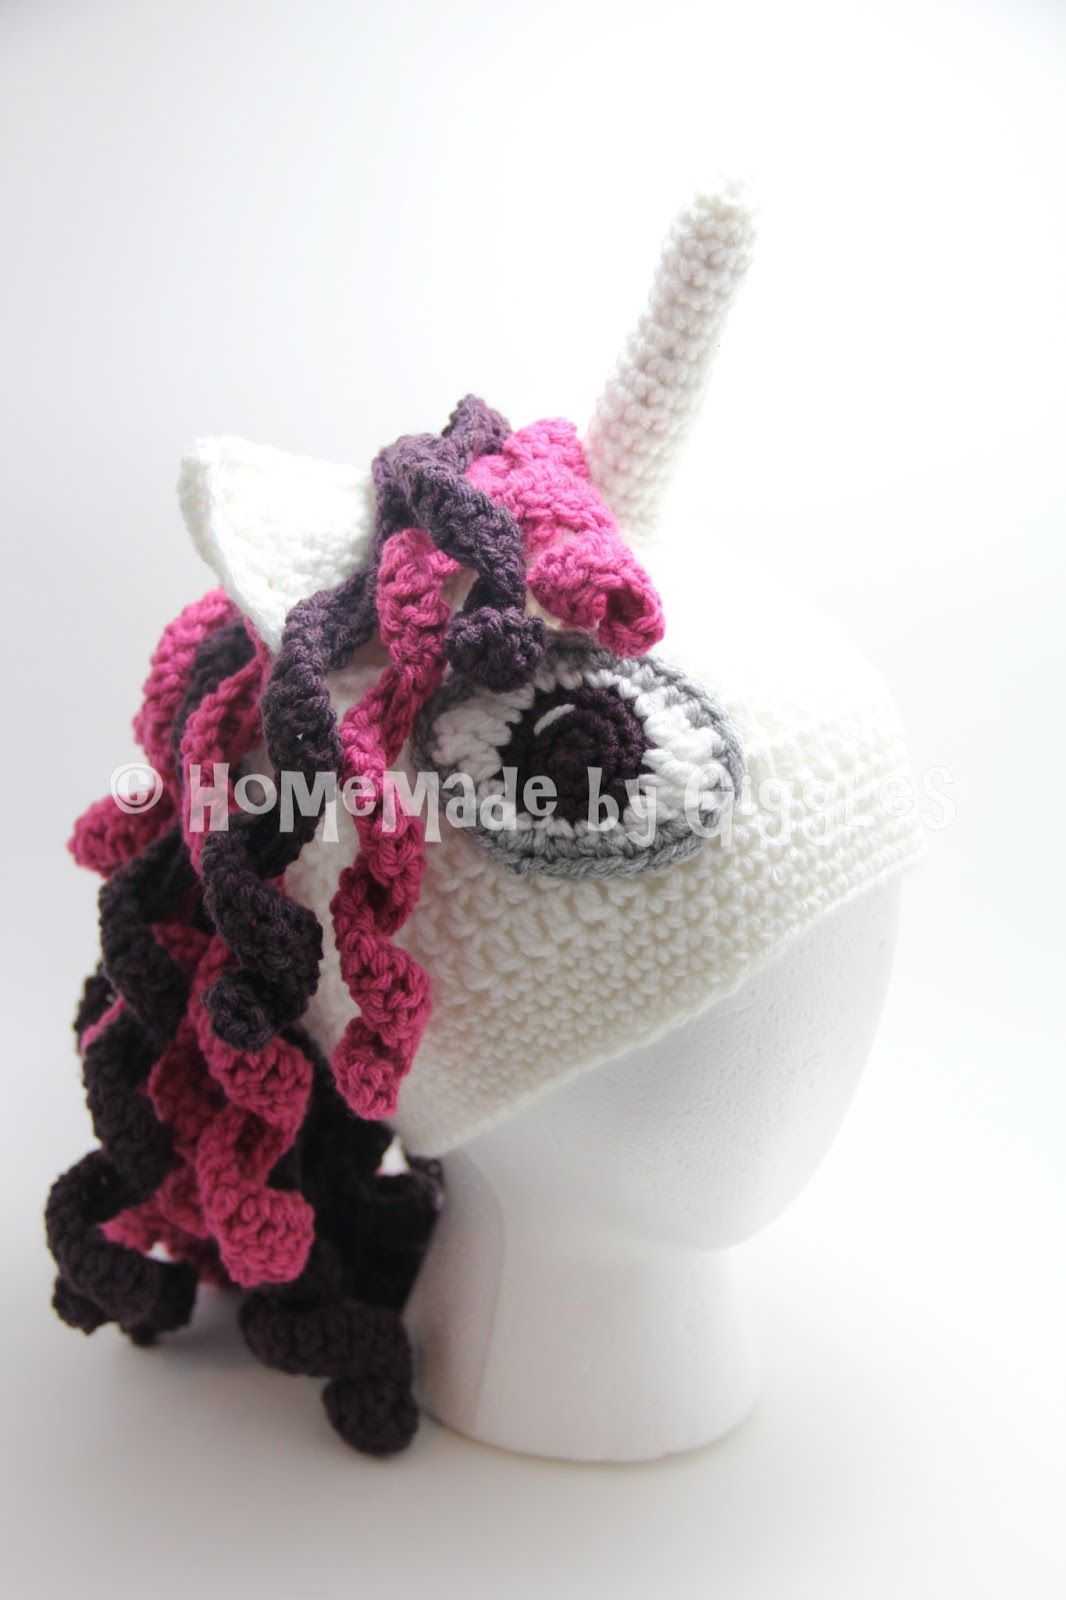 Homemade By Giggles Unicorn Hat Free Crochet Pattern